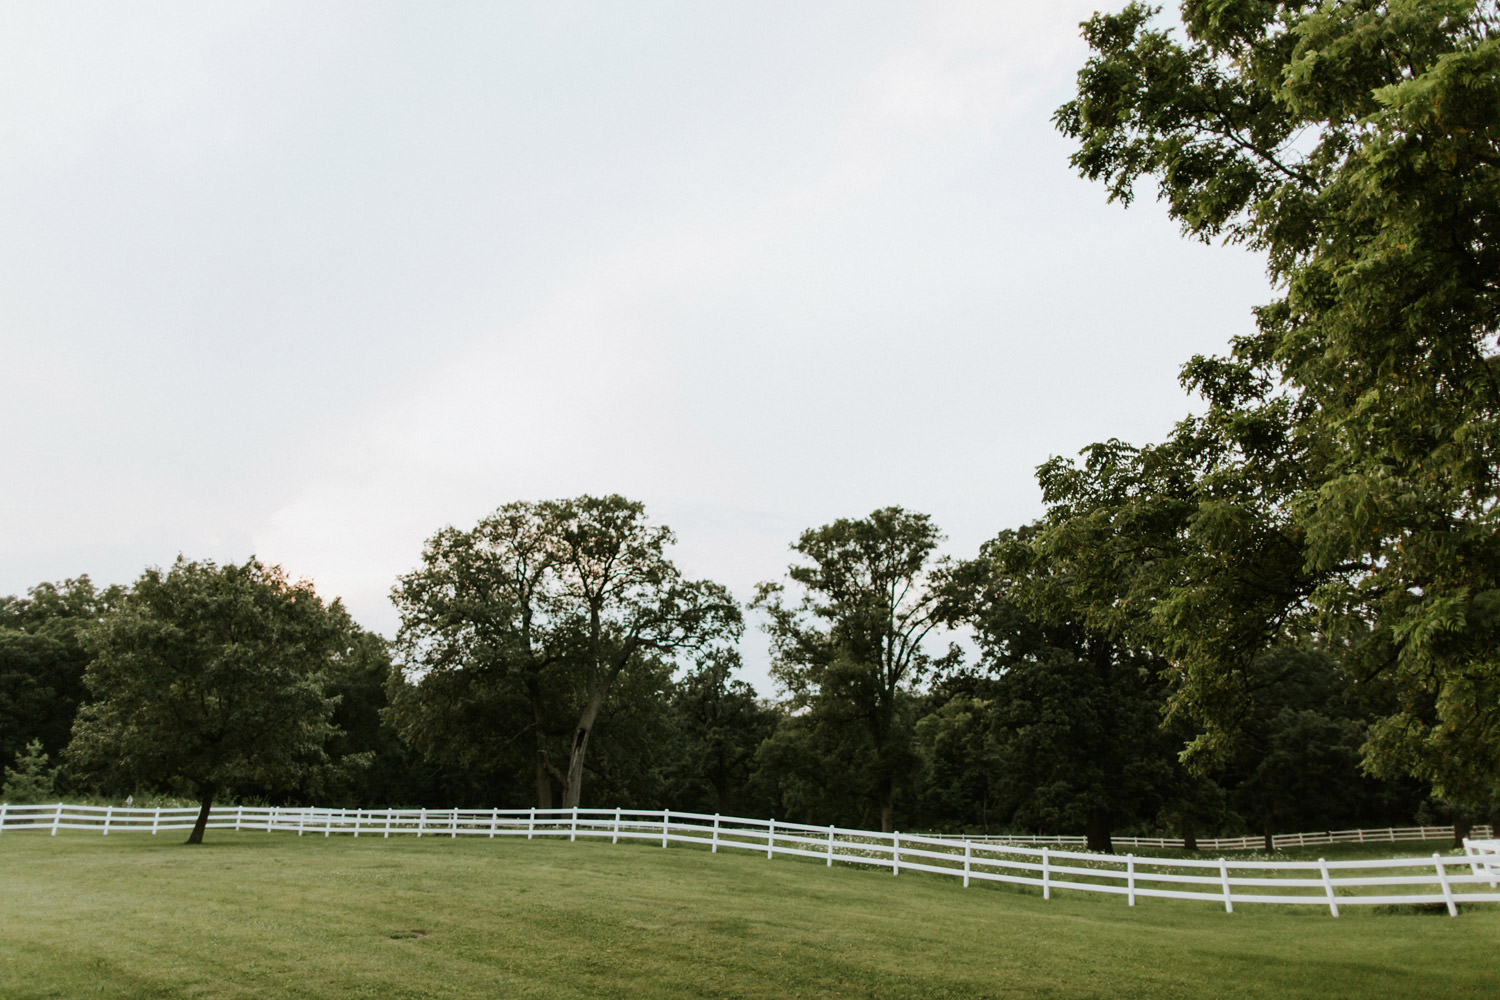 St. James farm photographed at sunset